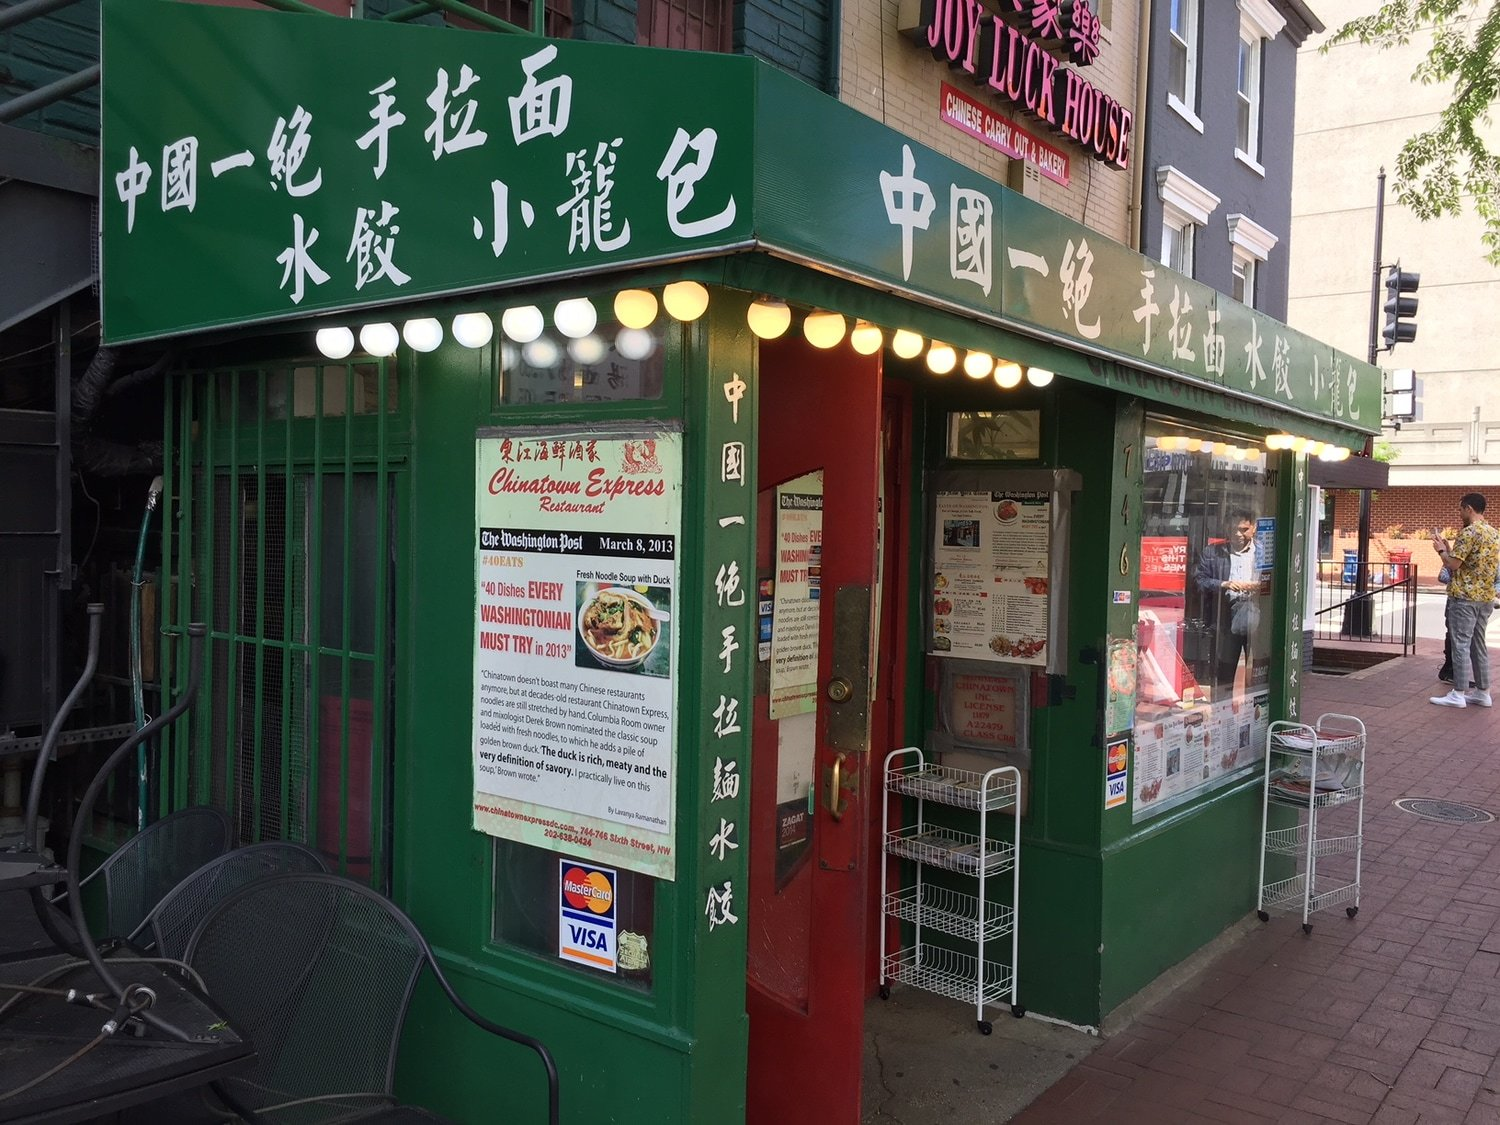 Chinatown Express Restaurant - Penn Quarter - Washington, DC